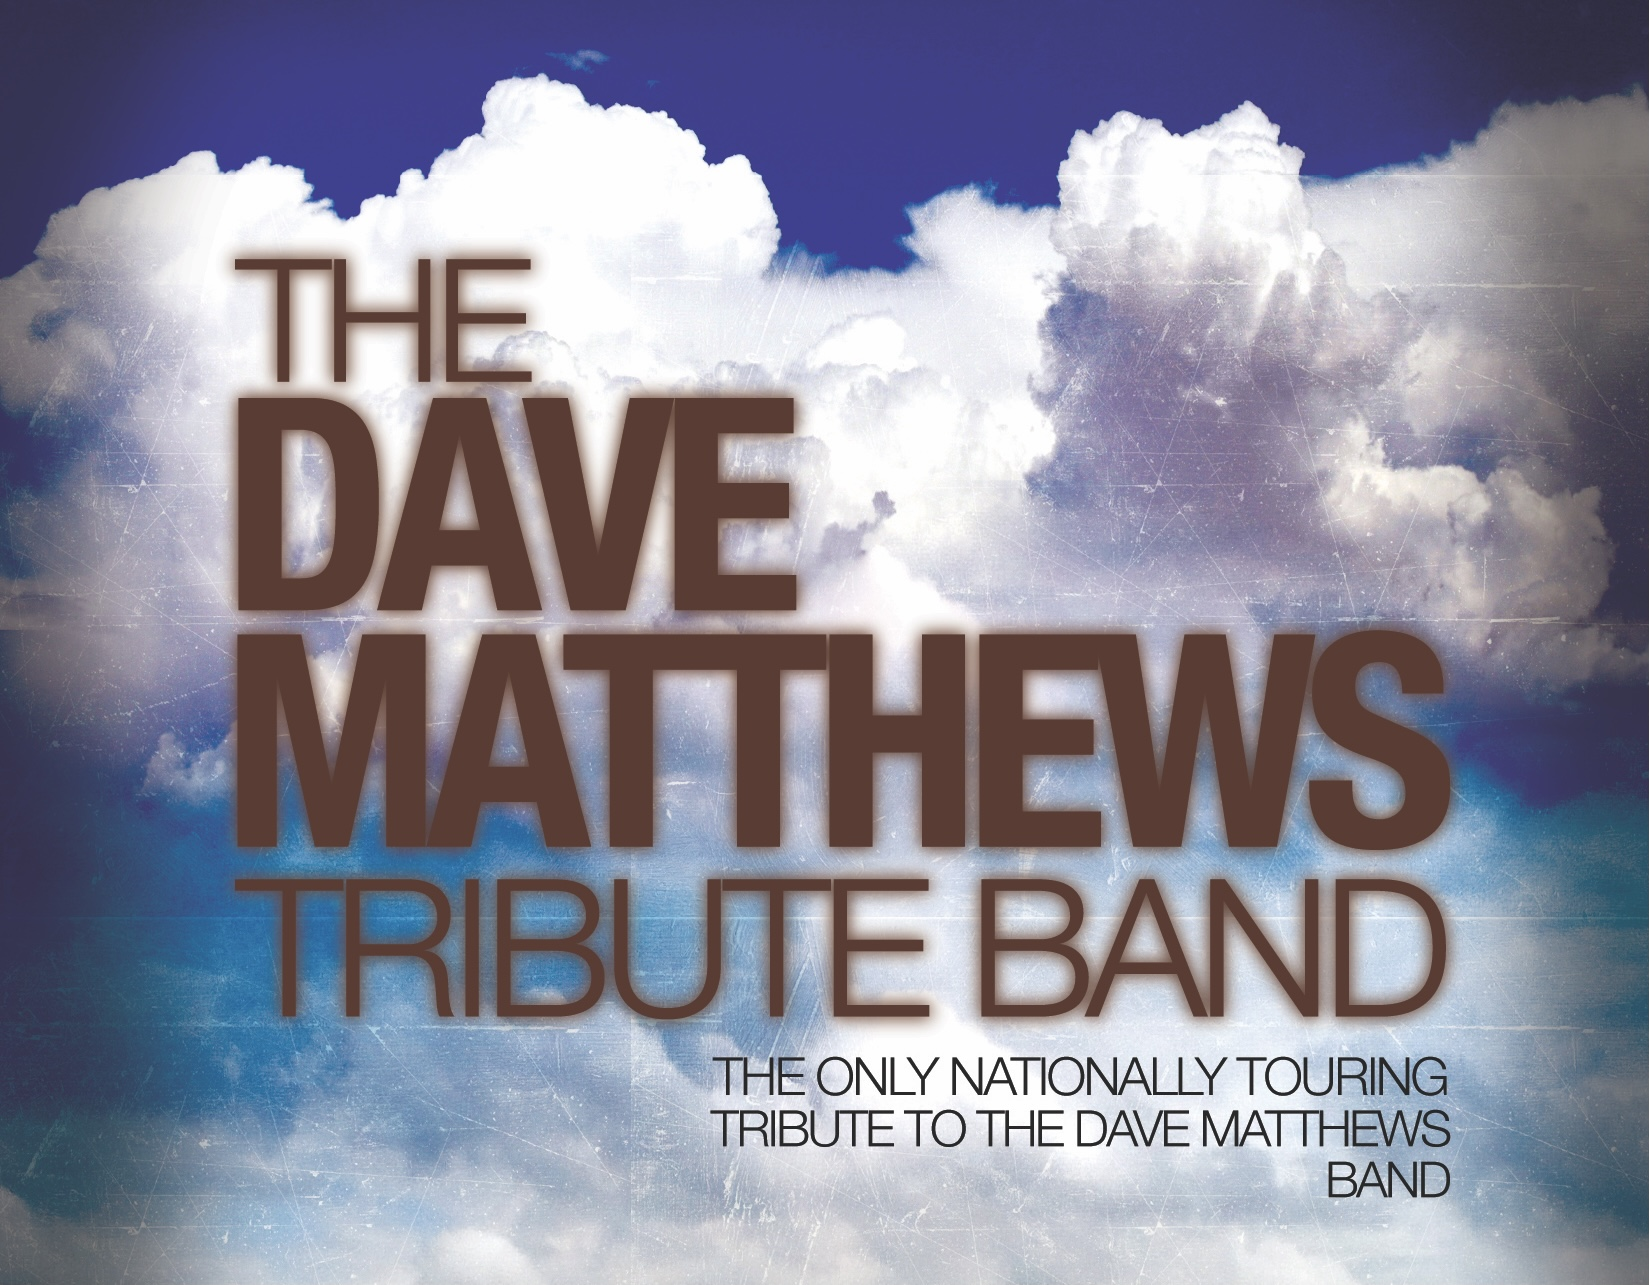 The Dave Matthews Tribute Band: